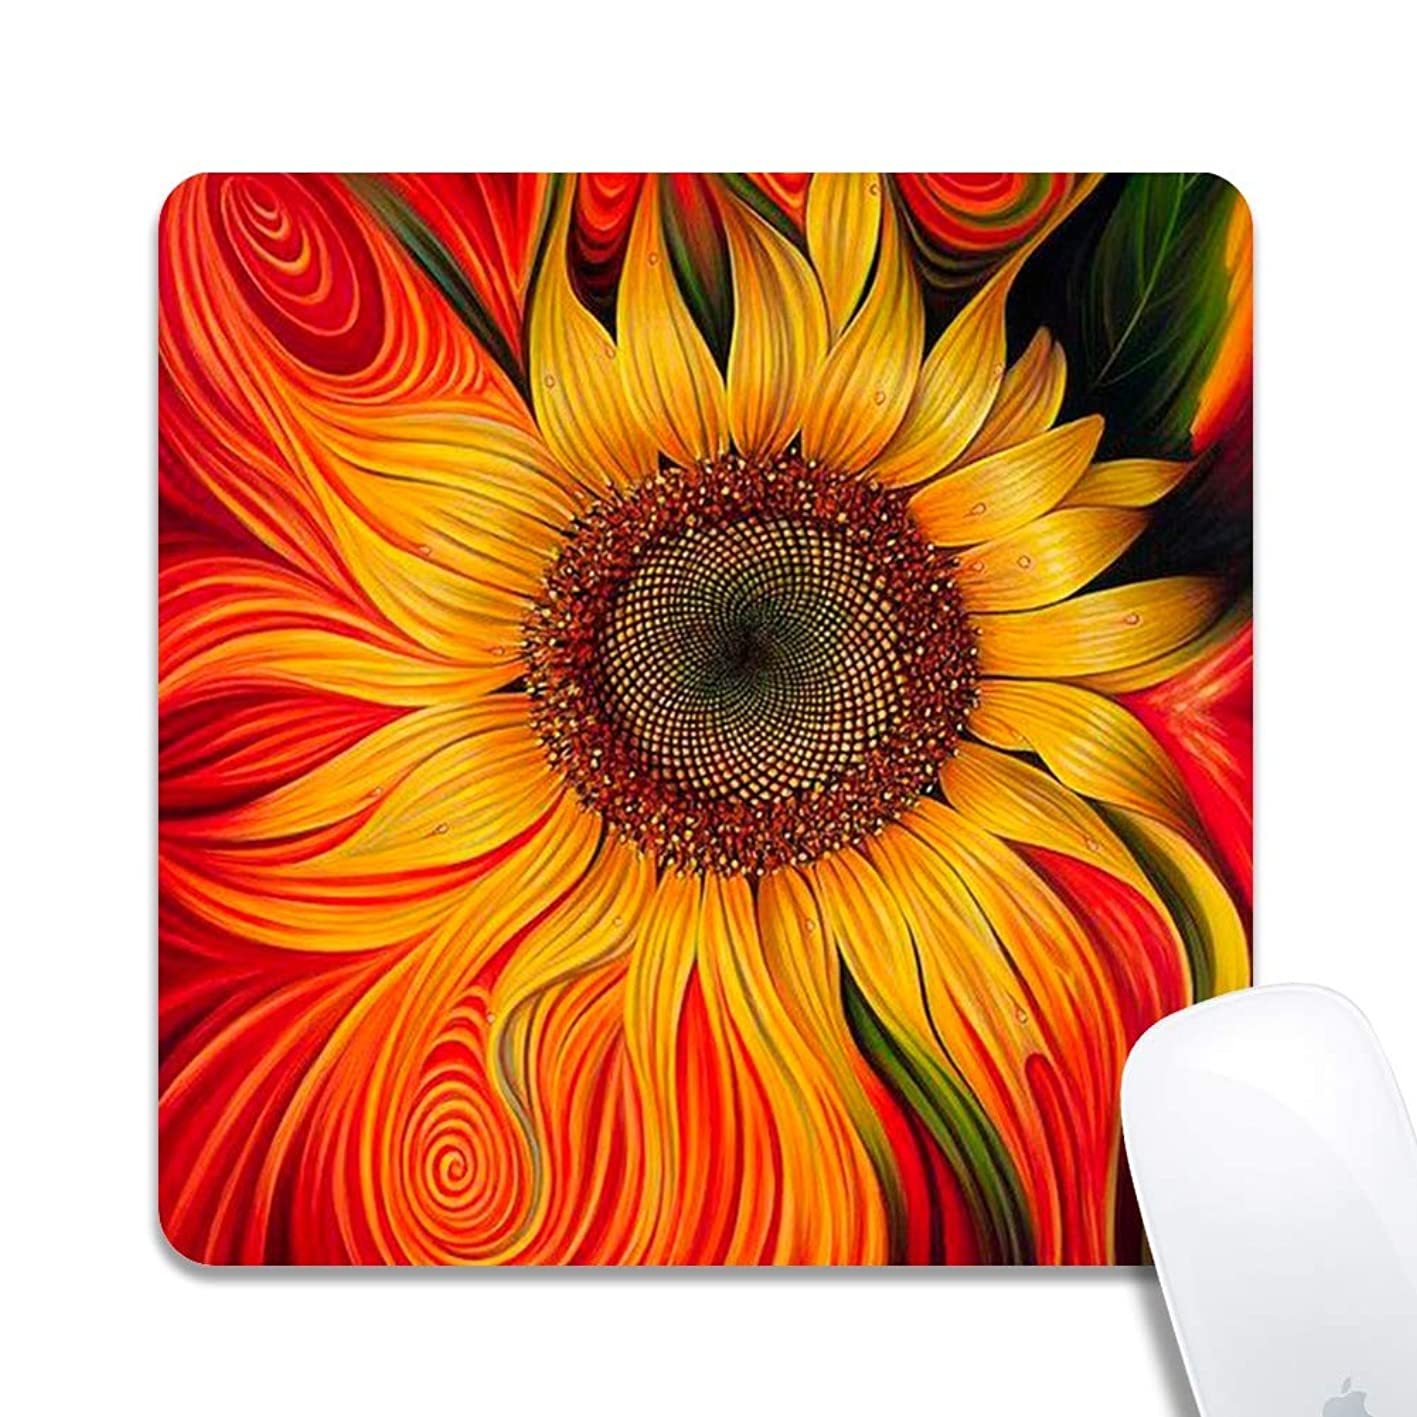 Sunflower Extended Ergonomic Gaming Mouse Pad,Square 200x200x3mm Mouse Pad Custom Design Rubber Square 200x200x3mm Mouse Pad-Sunflower blecgjpnmvz405